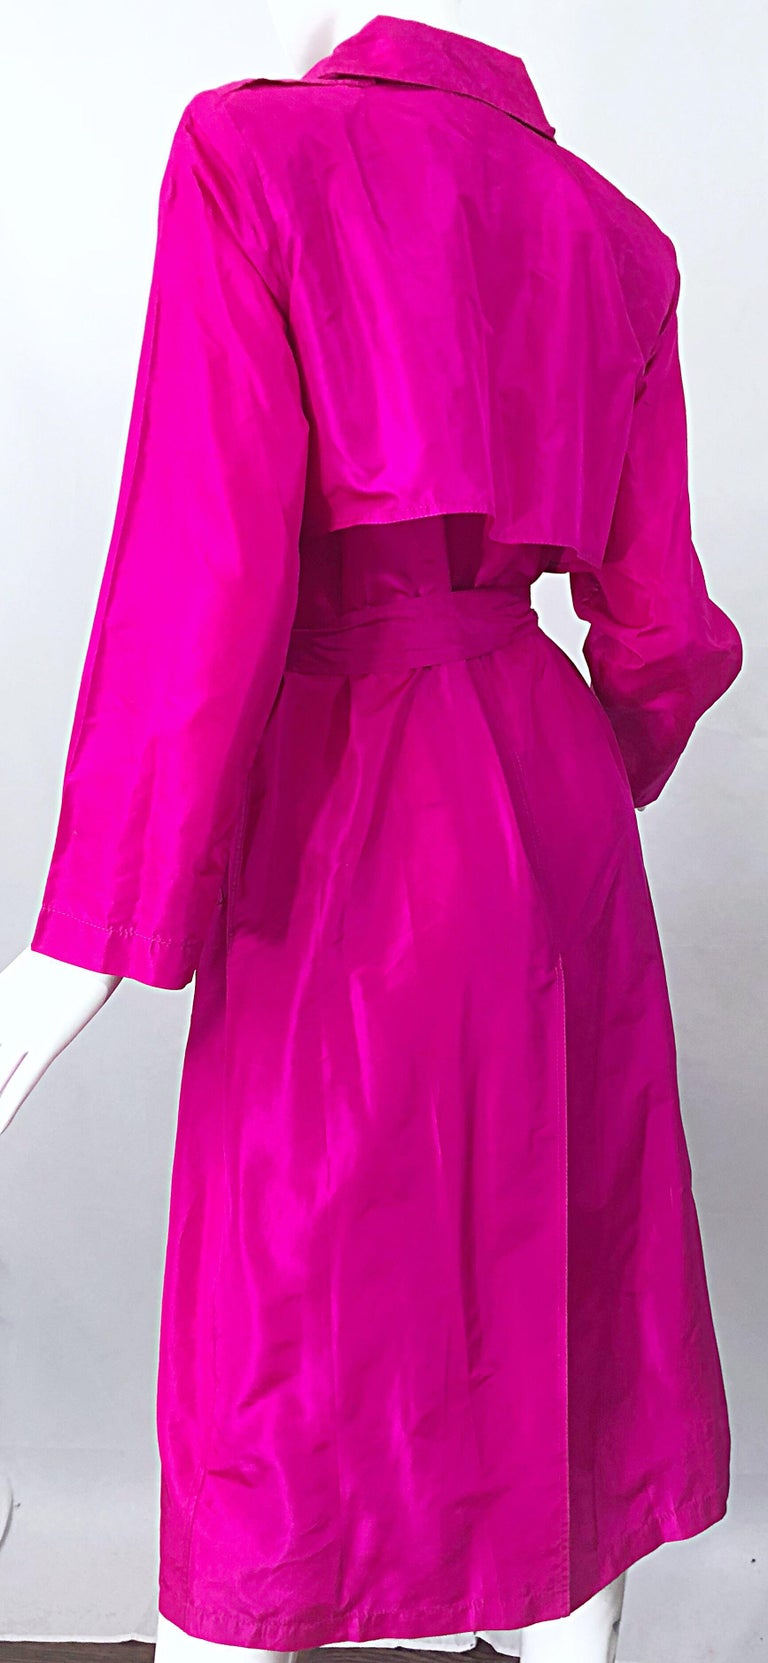 Vintage Vicky Tiel Couture 80s Hot Pink Fuchsia Silk 1980s Trecnch Jacket Dress For Sale 5